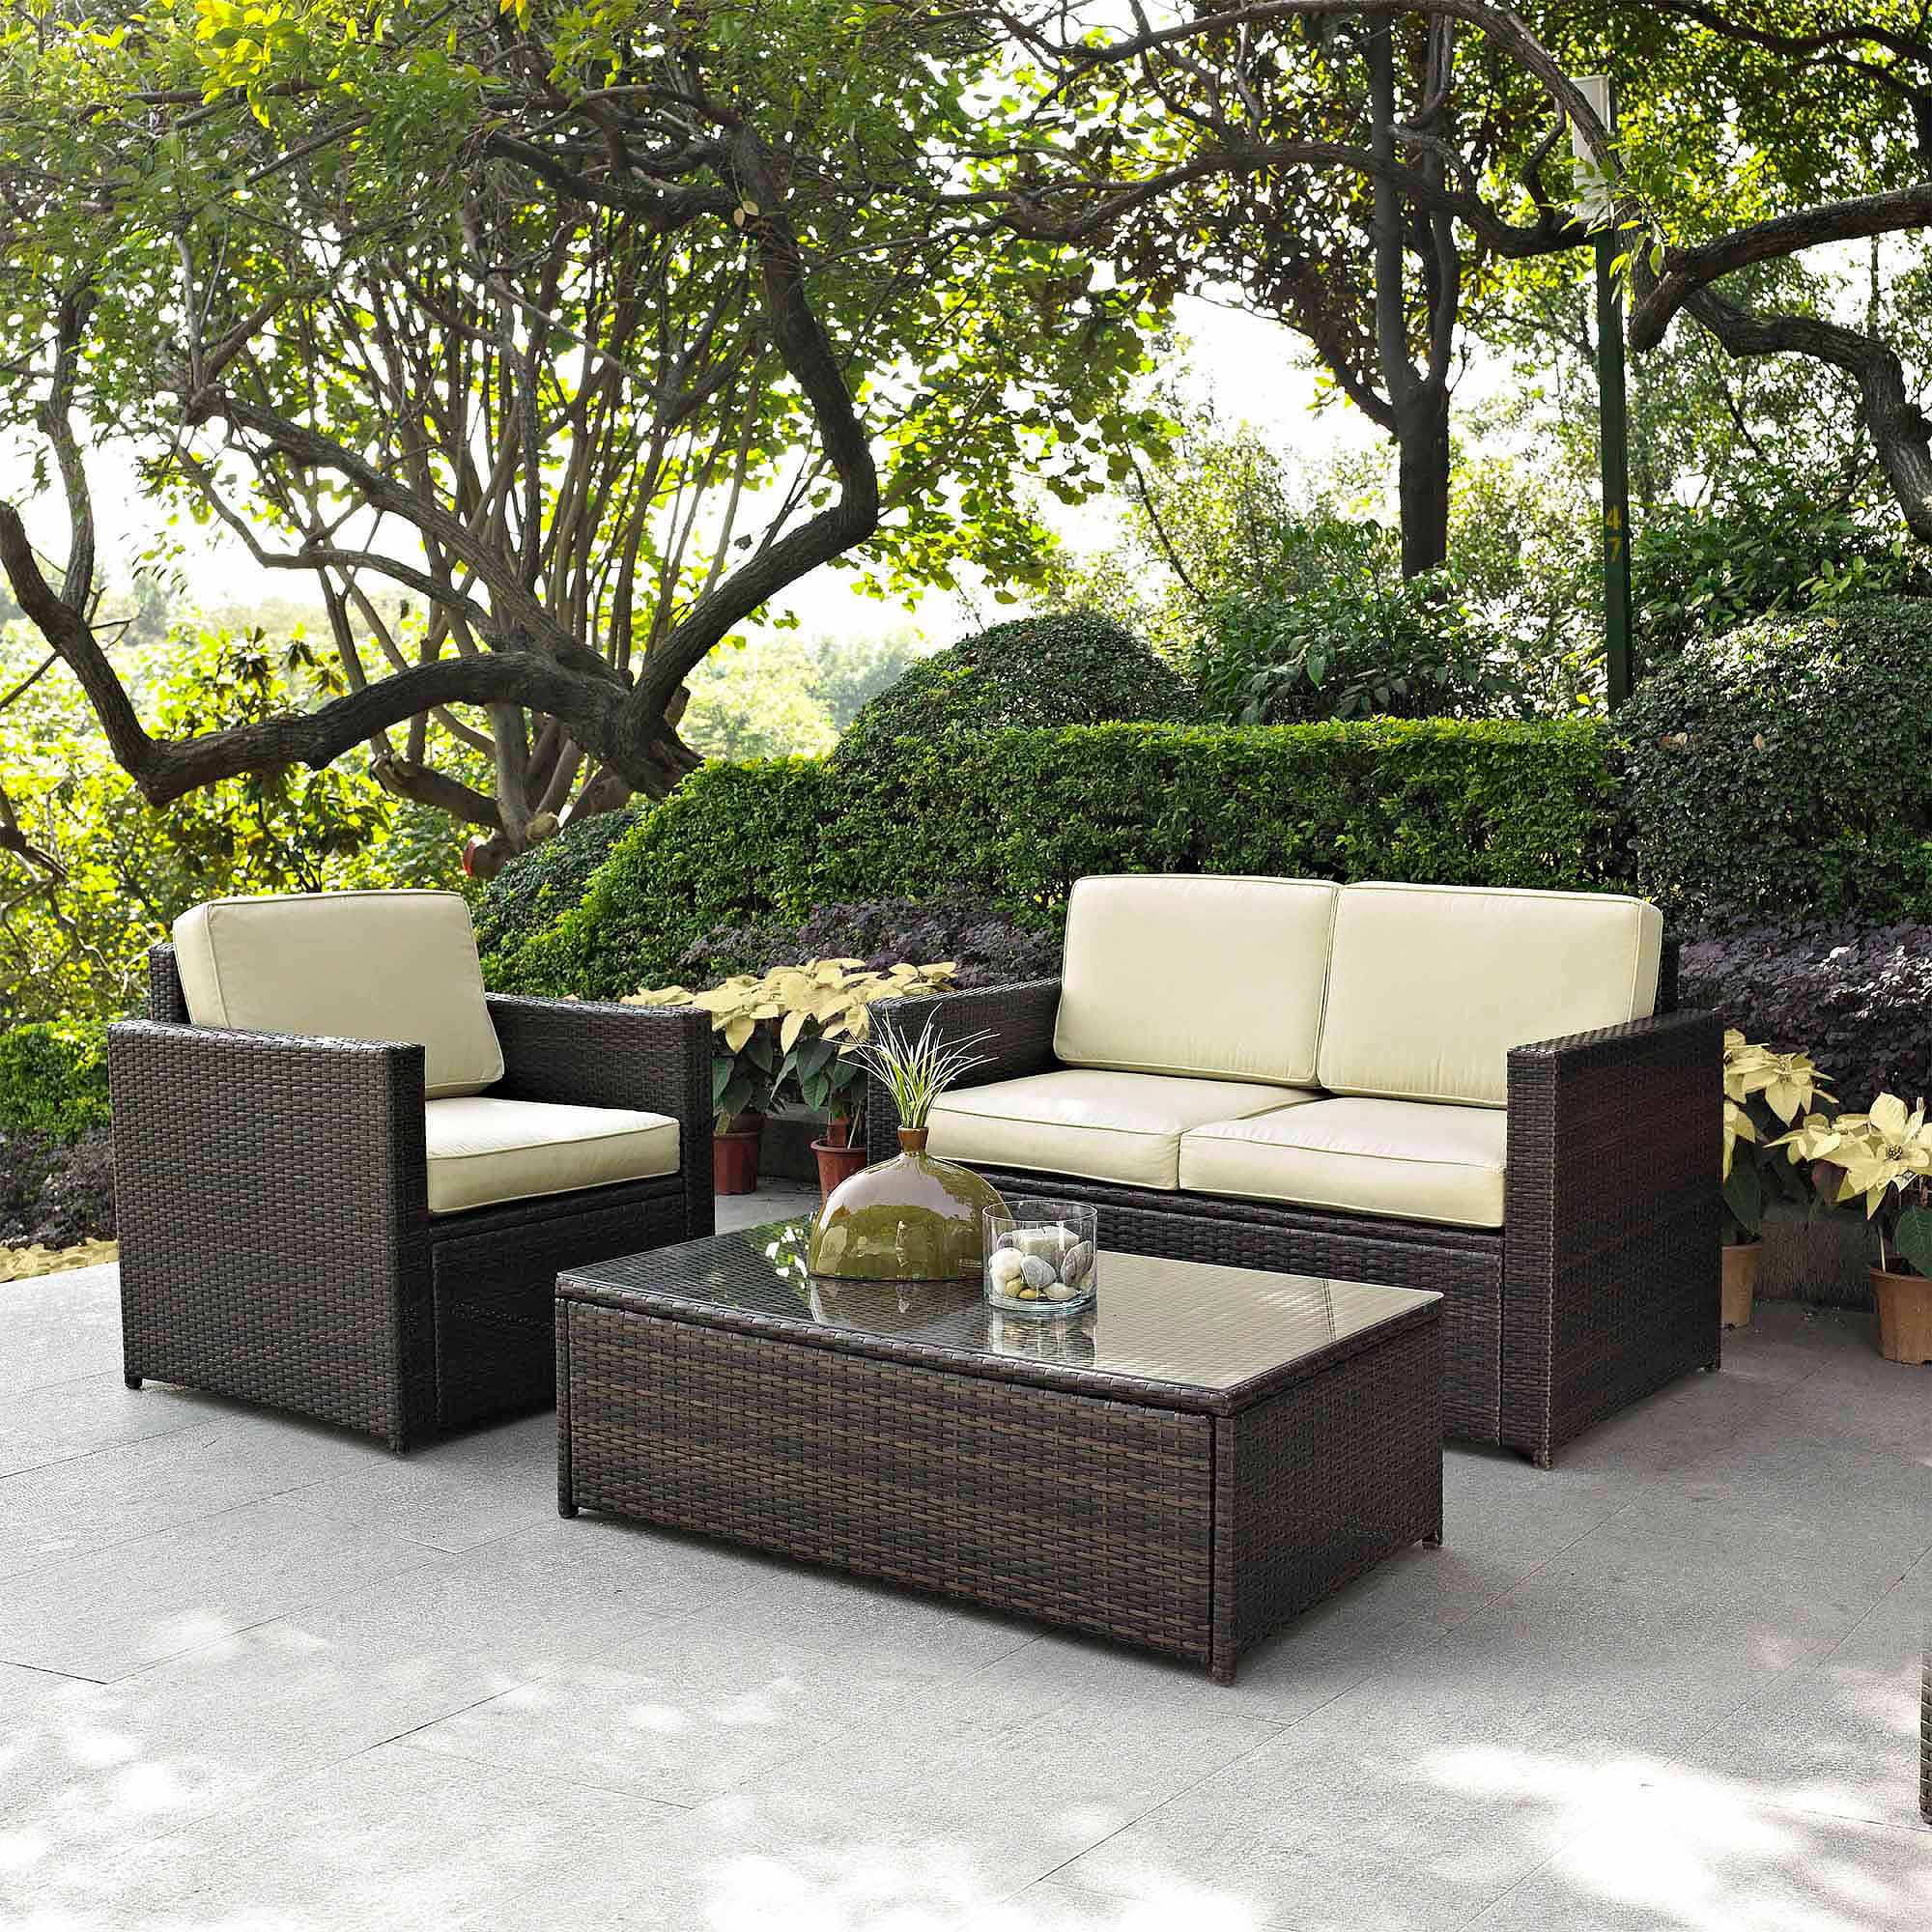 Crosley Furniture Palm Harbor 3-Piece Outdoor Wicker Seating Set